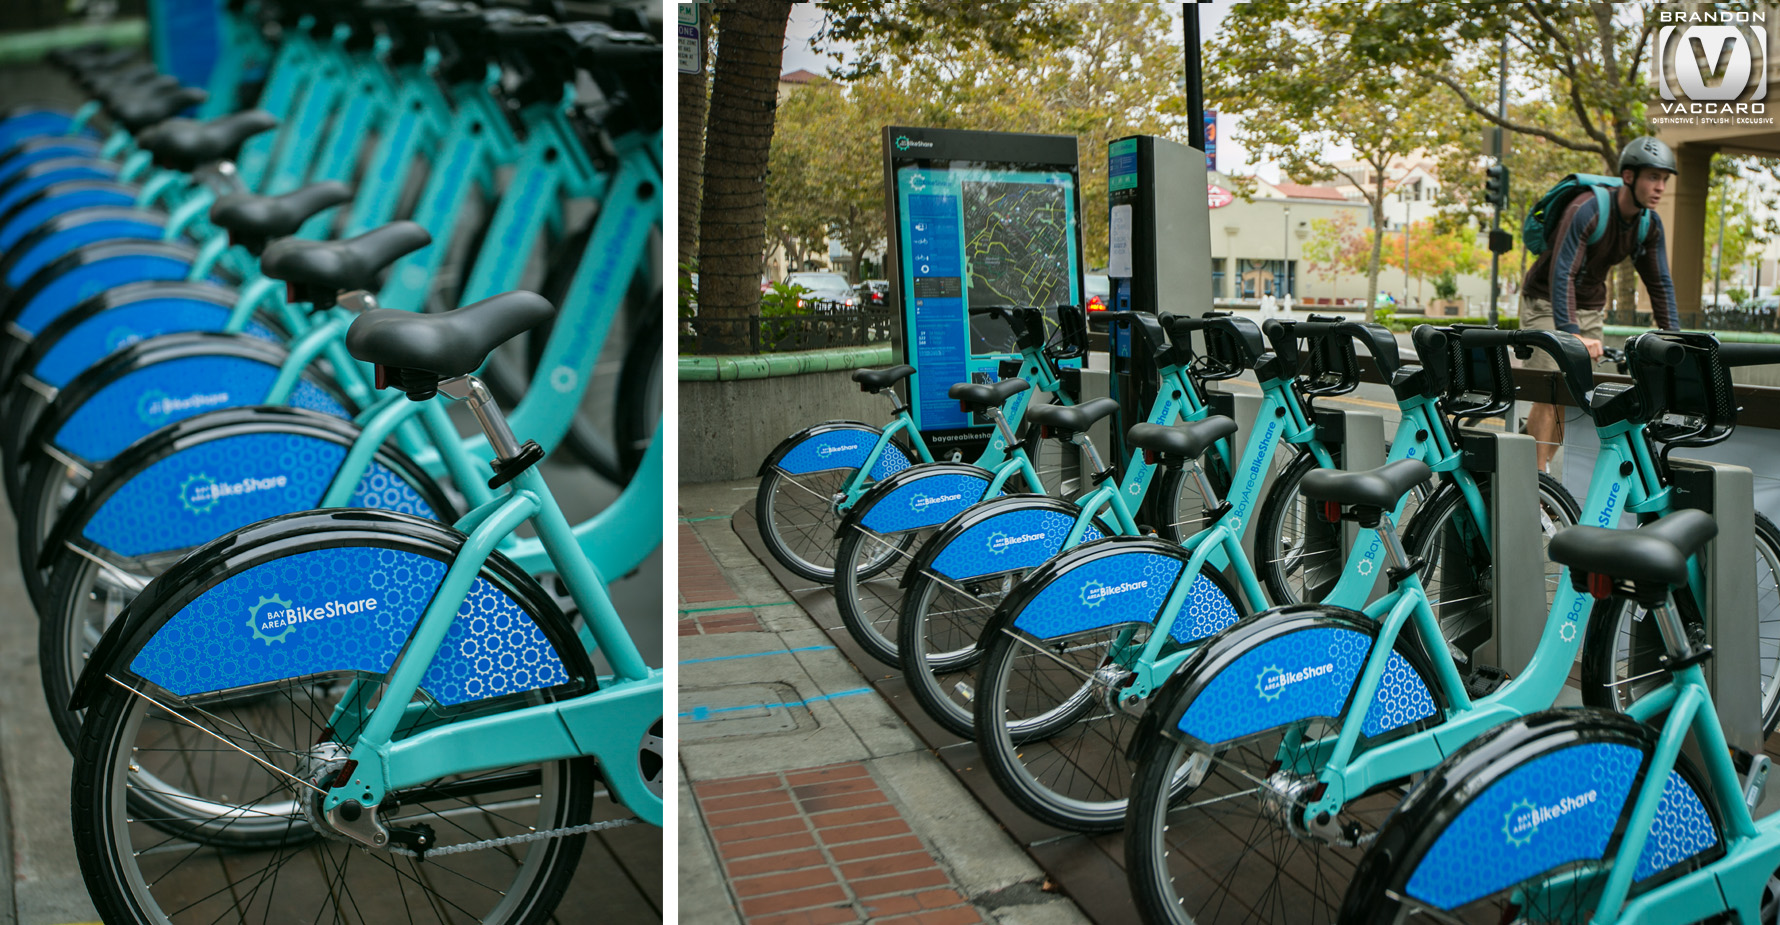 commercial-corporate-bay-area-bike-share-city-of-palo-alto.jpg